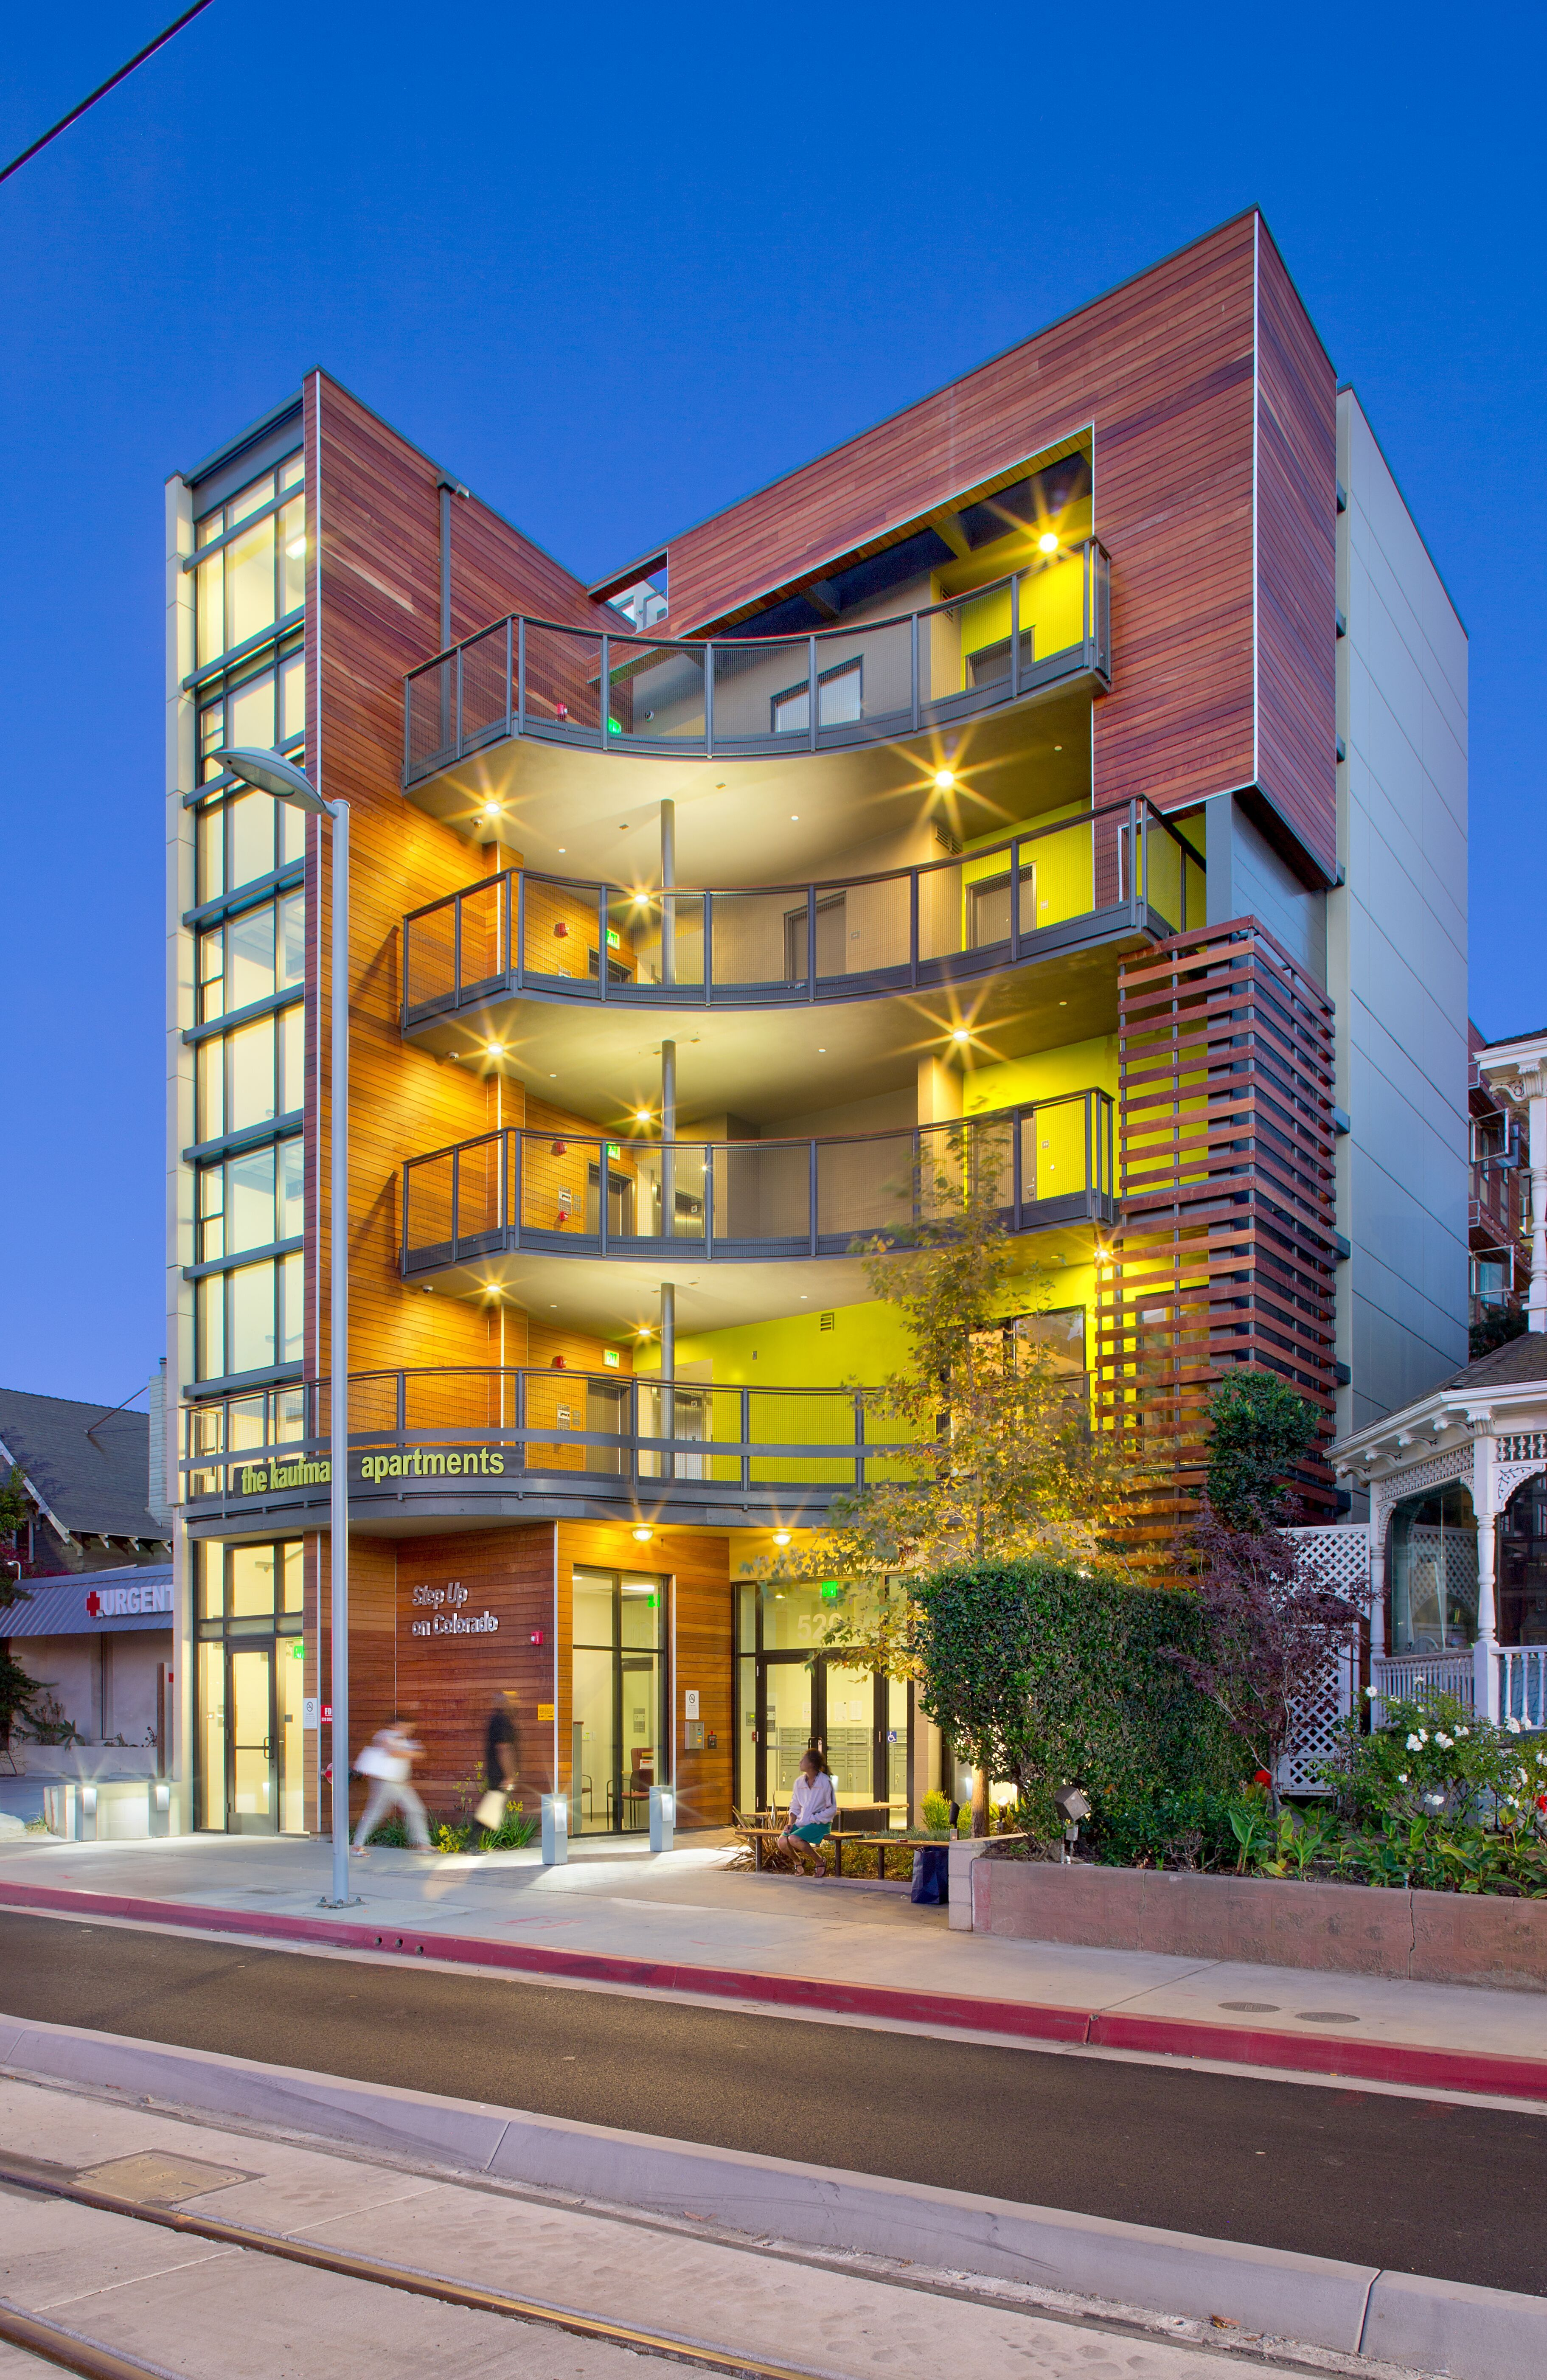 Downtown Santa Monica Is One Of The Few Places In The City Where Any New Housing Gets Built Including Af Santa Monica California Real Estate Old Western Towns